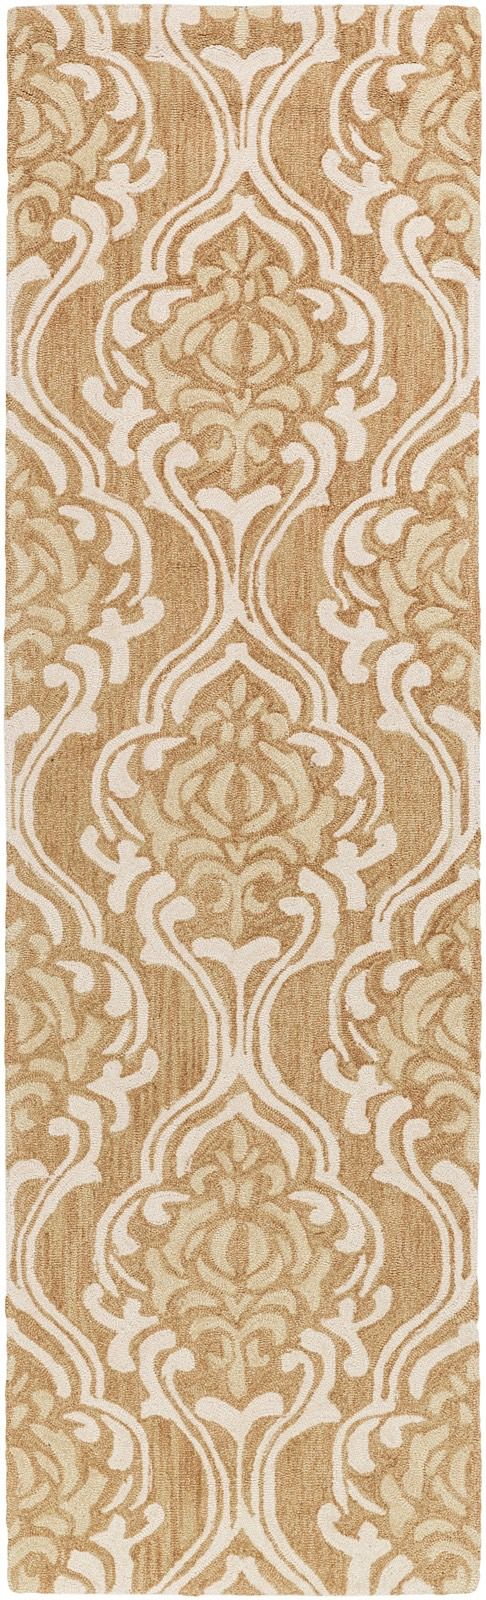 surya samual contemporary area rug collection